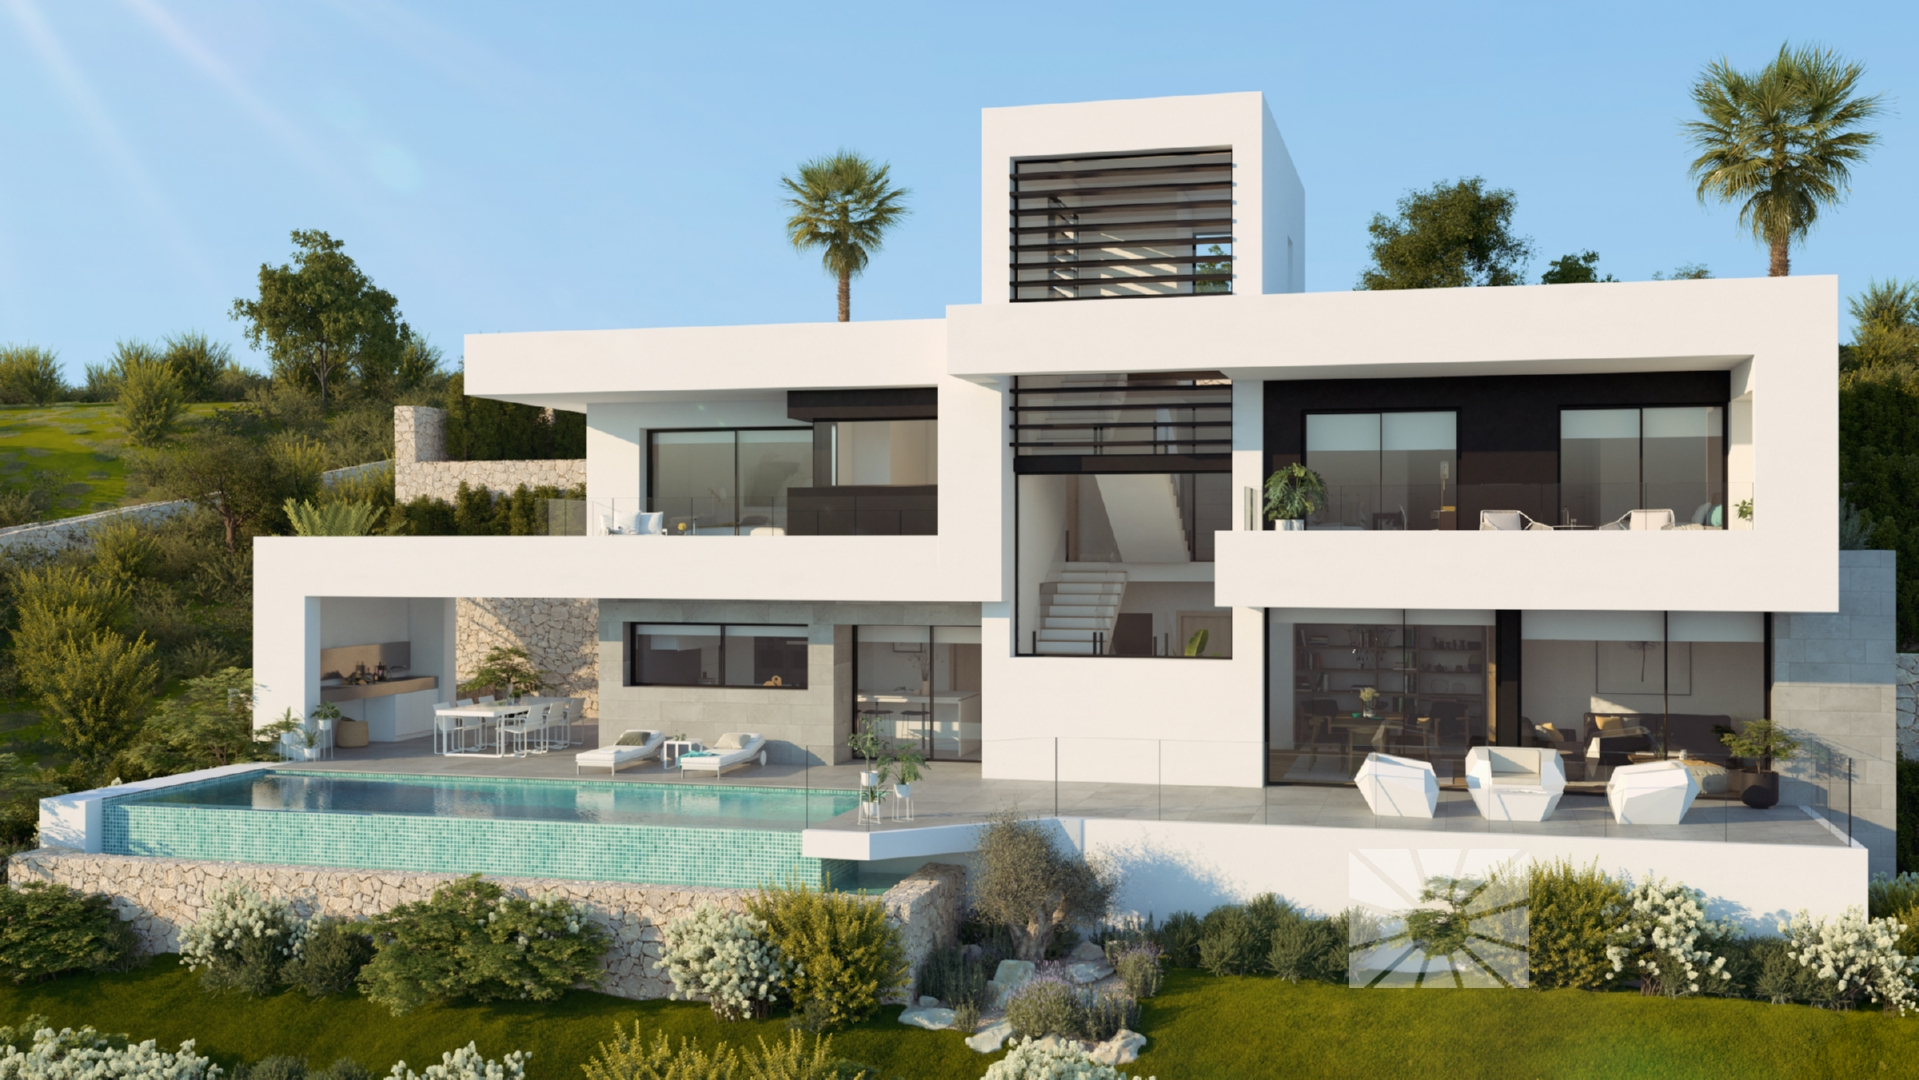 Marketing Exterior View towards Altea H2 Altea Golden Altea